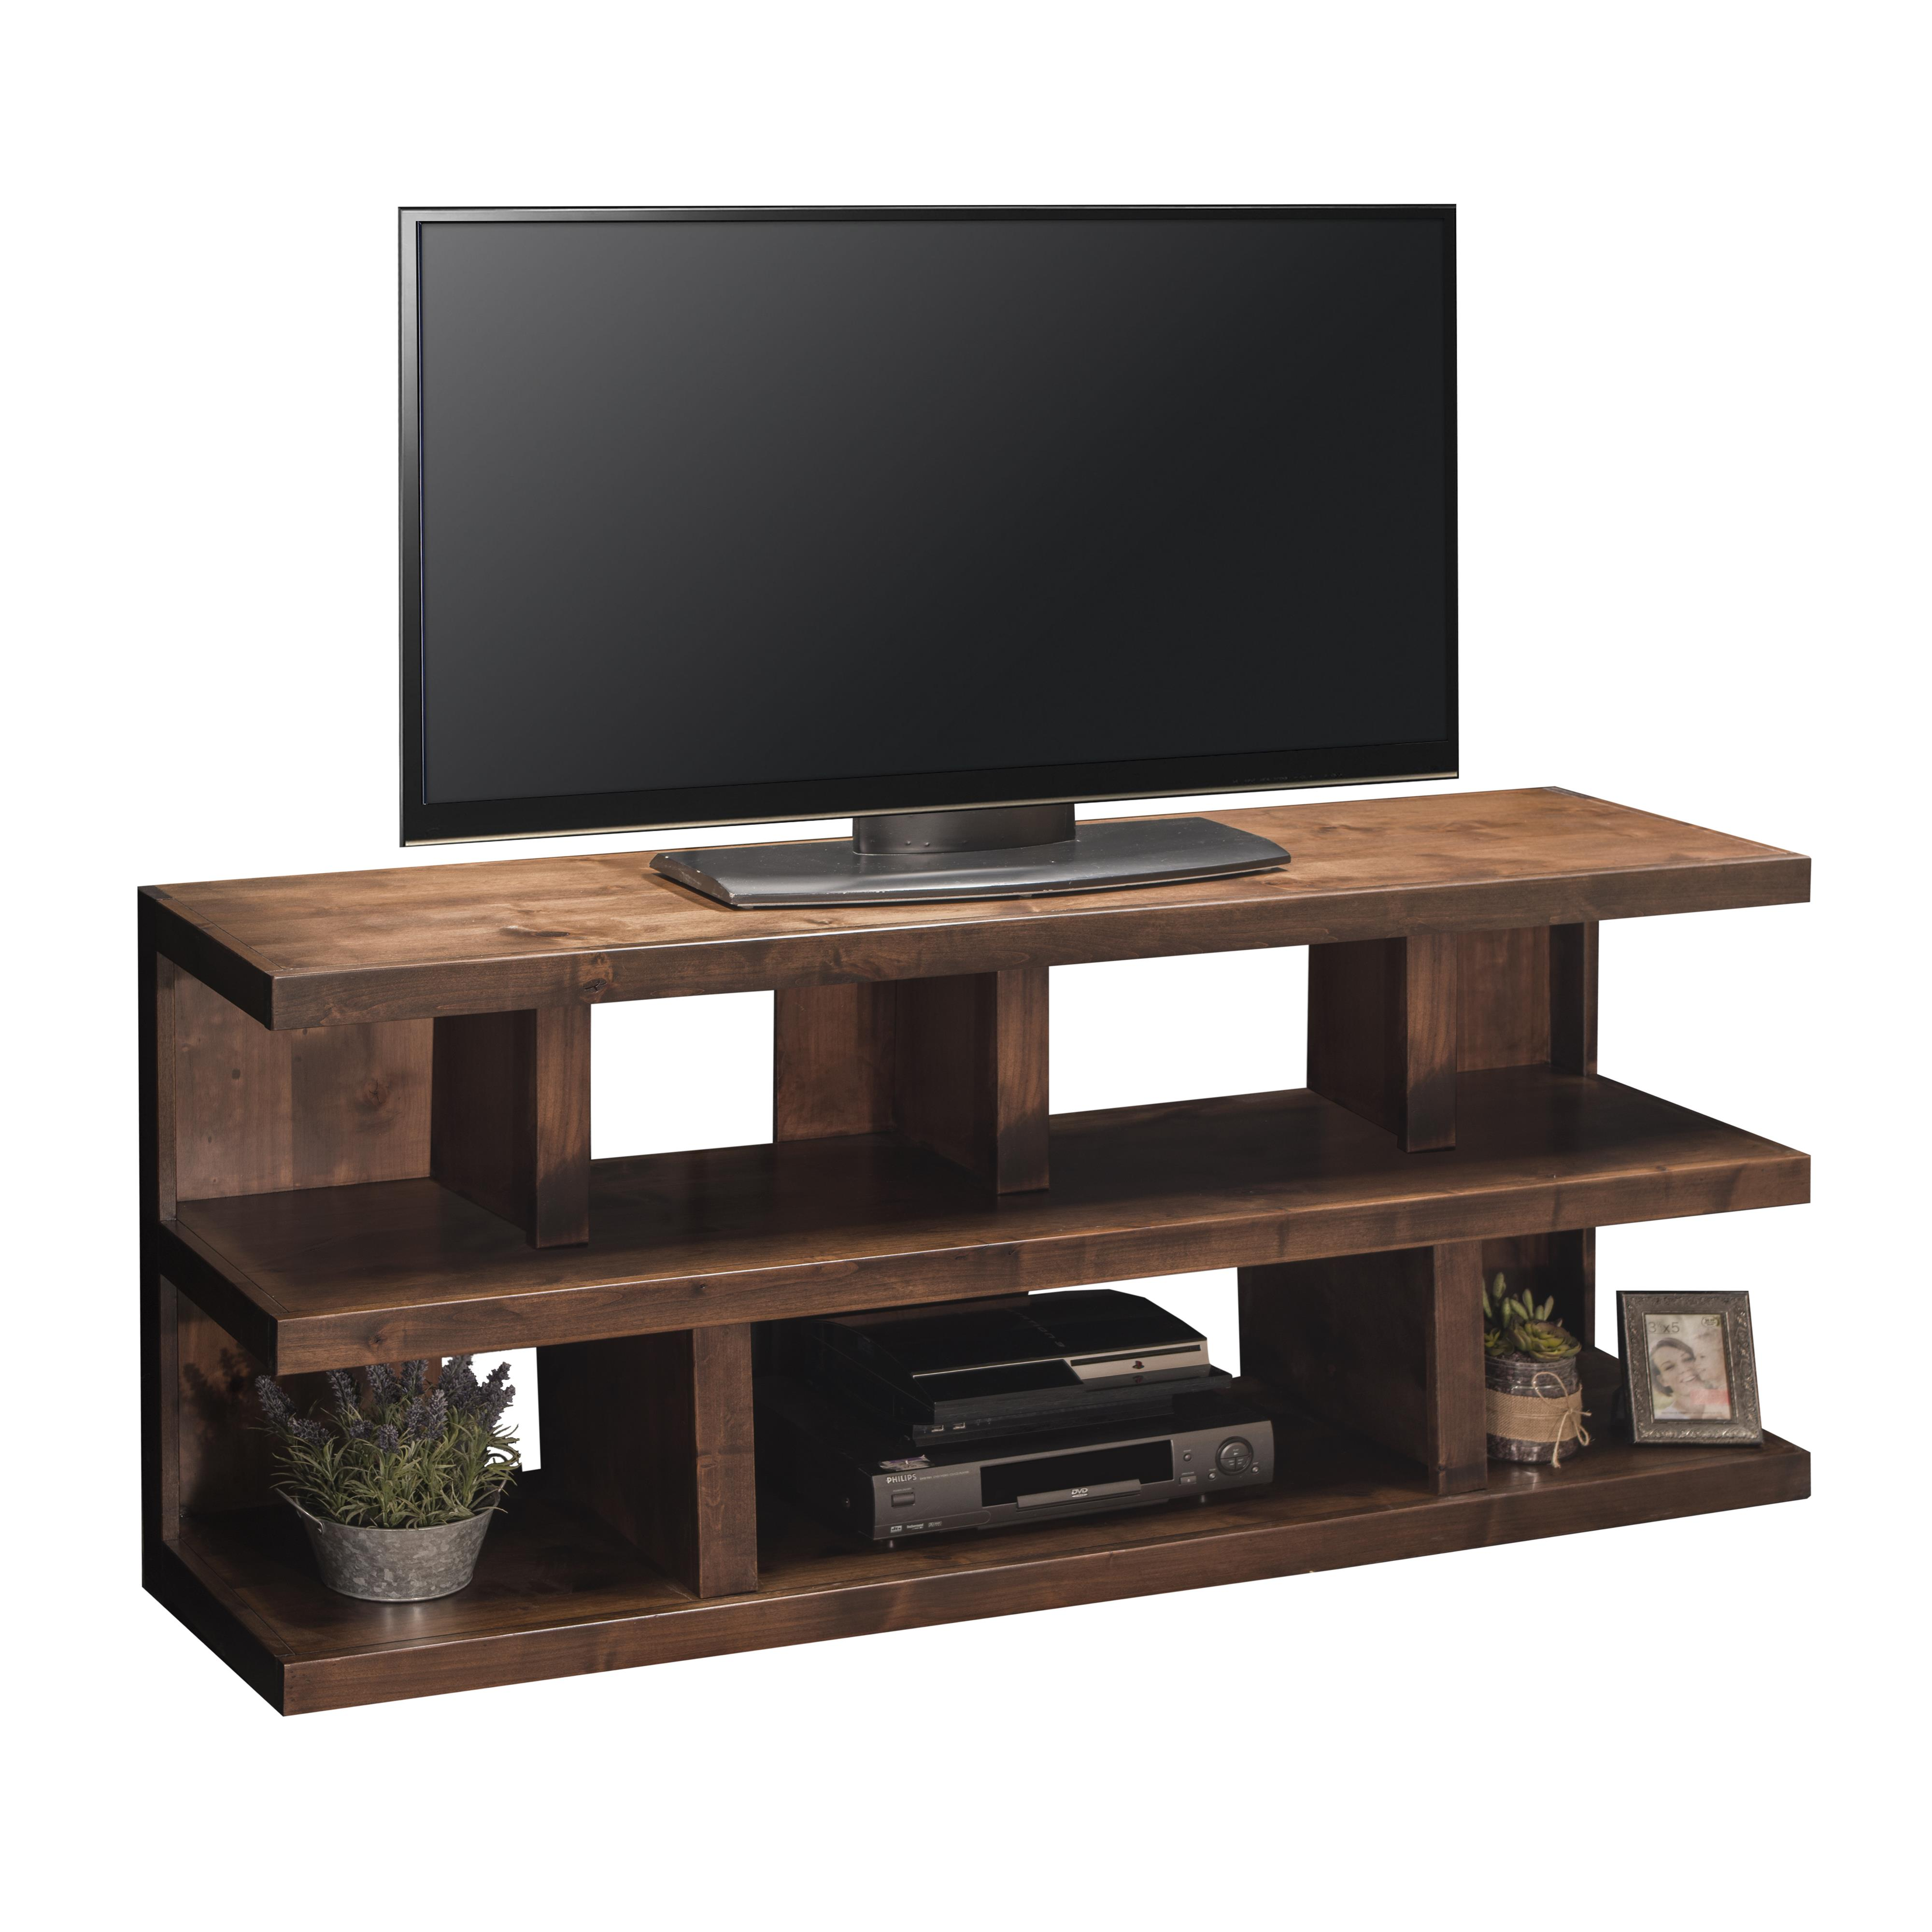 "Legends Furniture Sausalito Collection 64"" Media Console - Item Number: SL1230-WKY"